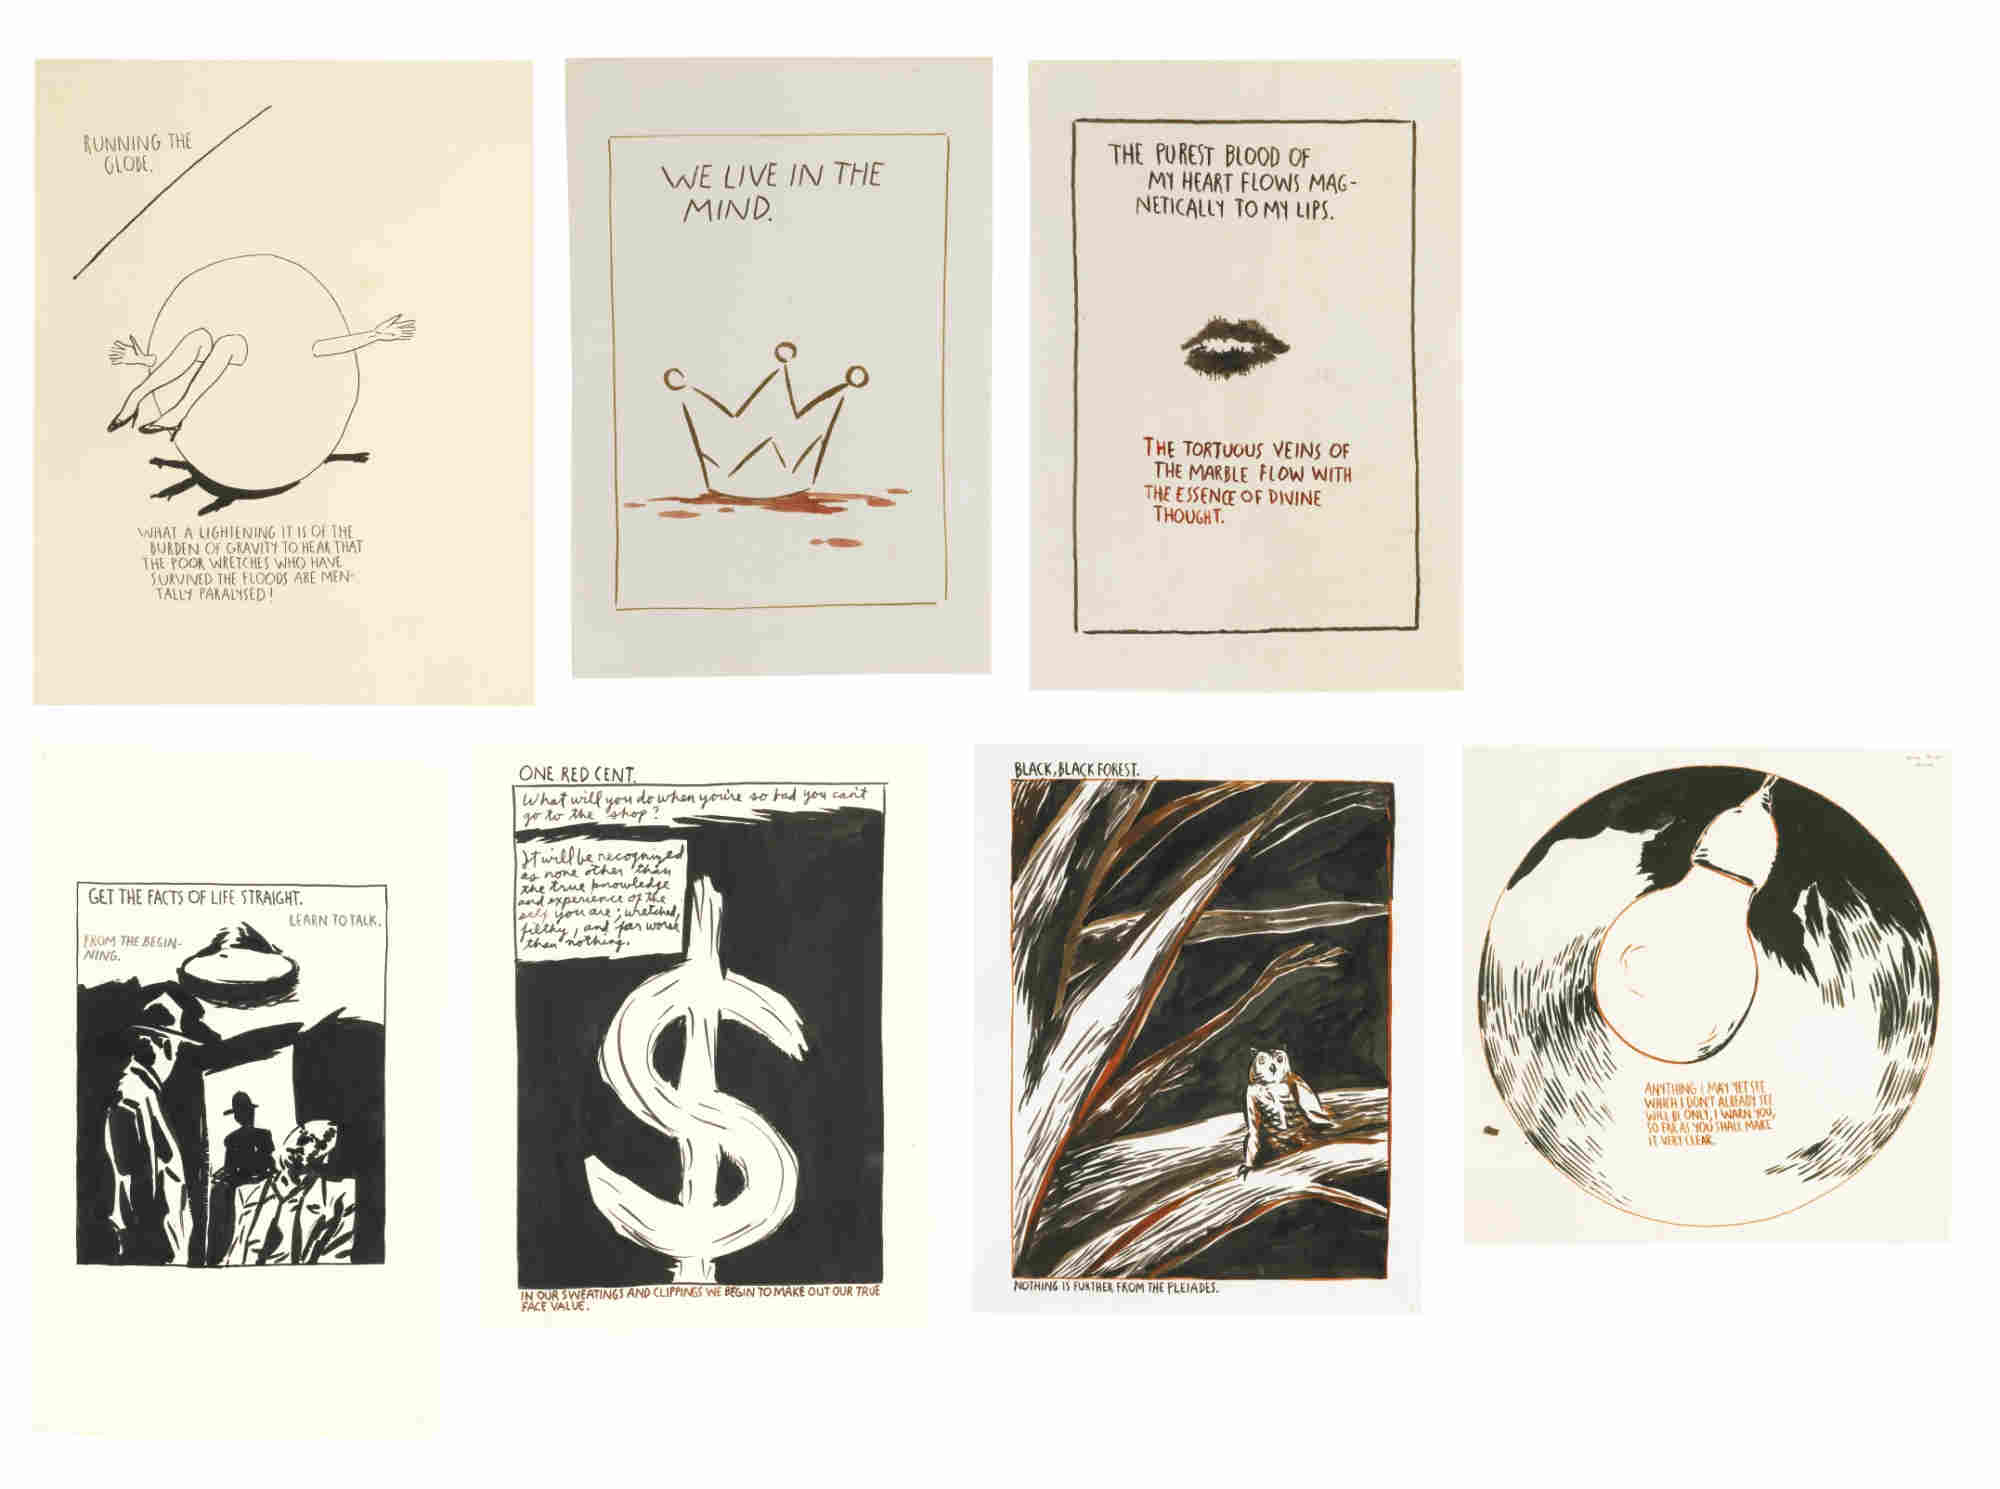 Raymond Pettibon-Untitled (Running The Globe...); Untitled (Anything I May...); Untitled (Black Black Forest...); Untitled (We Live In...); Untitled (Get The Facts...); Untitled (One Red Cent...); Untitled (The Purest Blood...)-1992